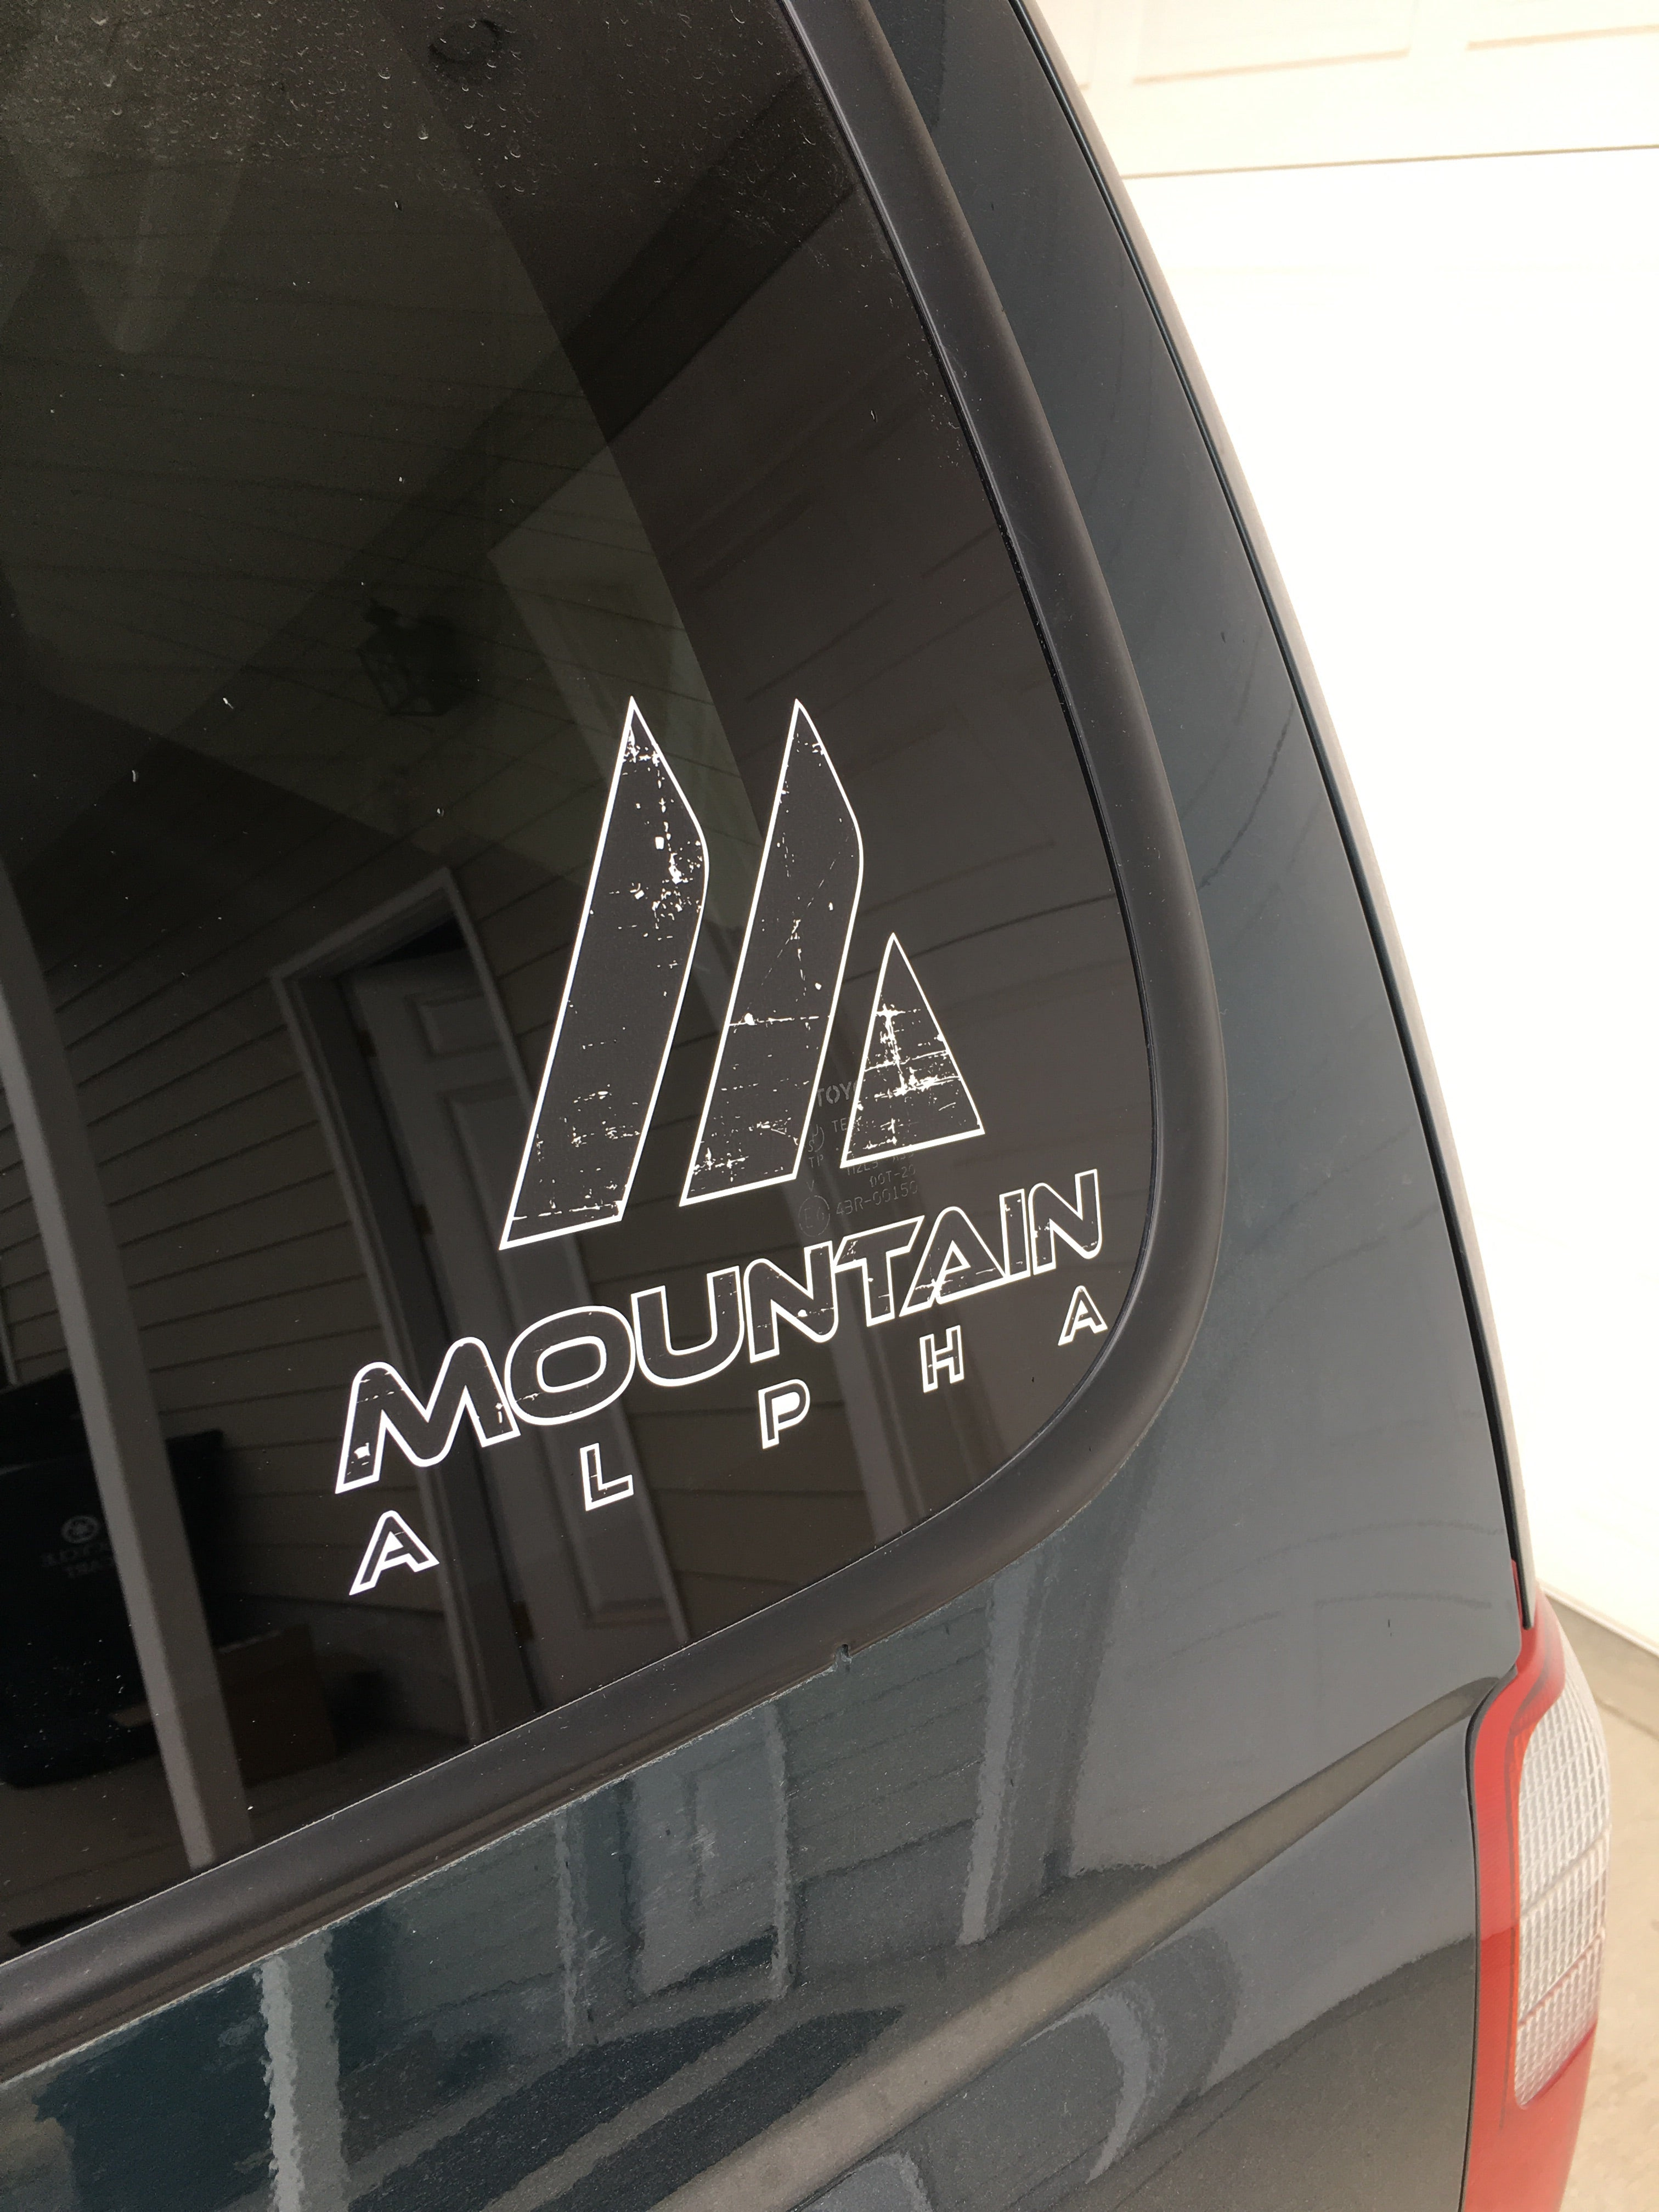 6x8in Die Cut Sticker (Black)